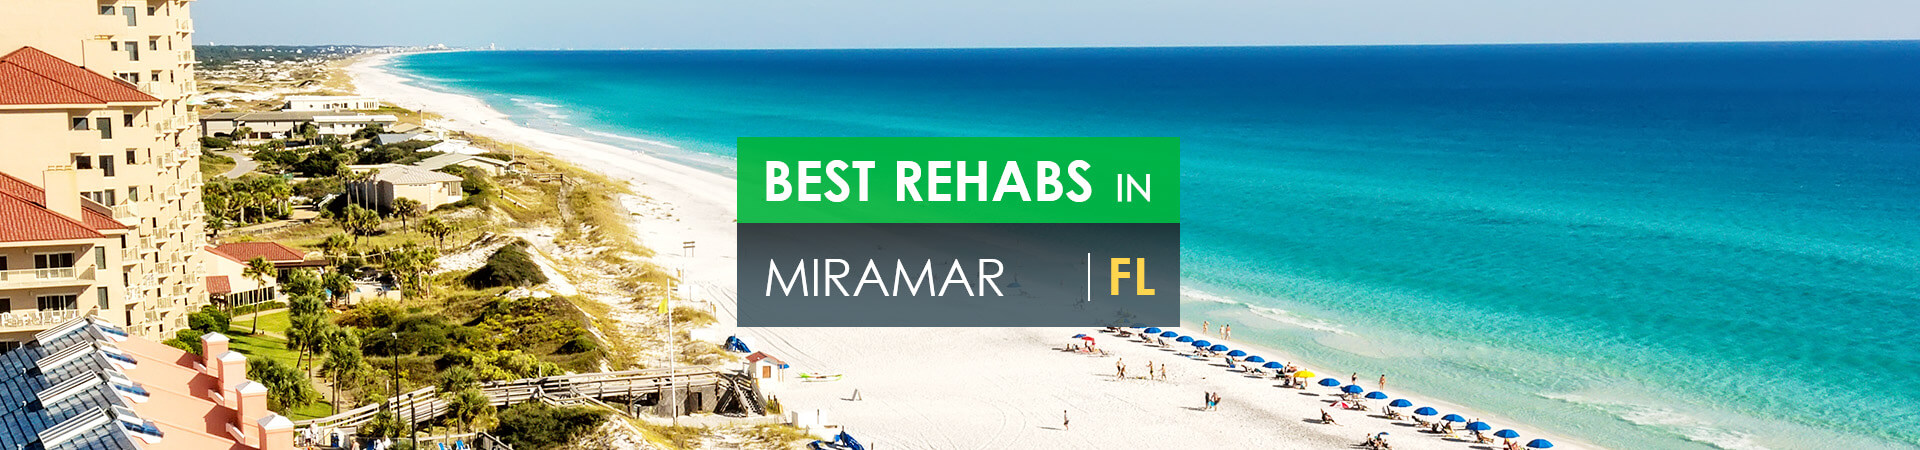 Best rehabs in Miramar, FL